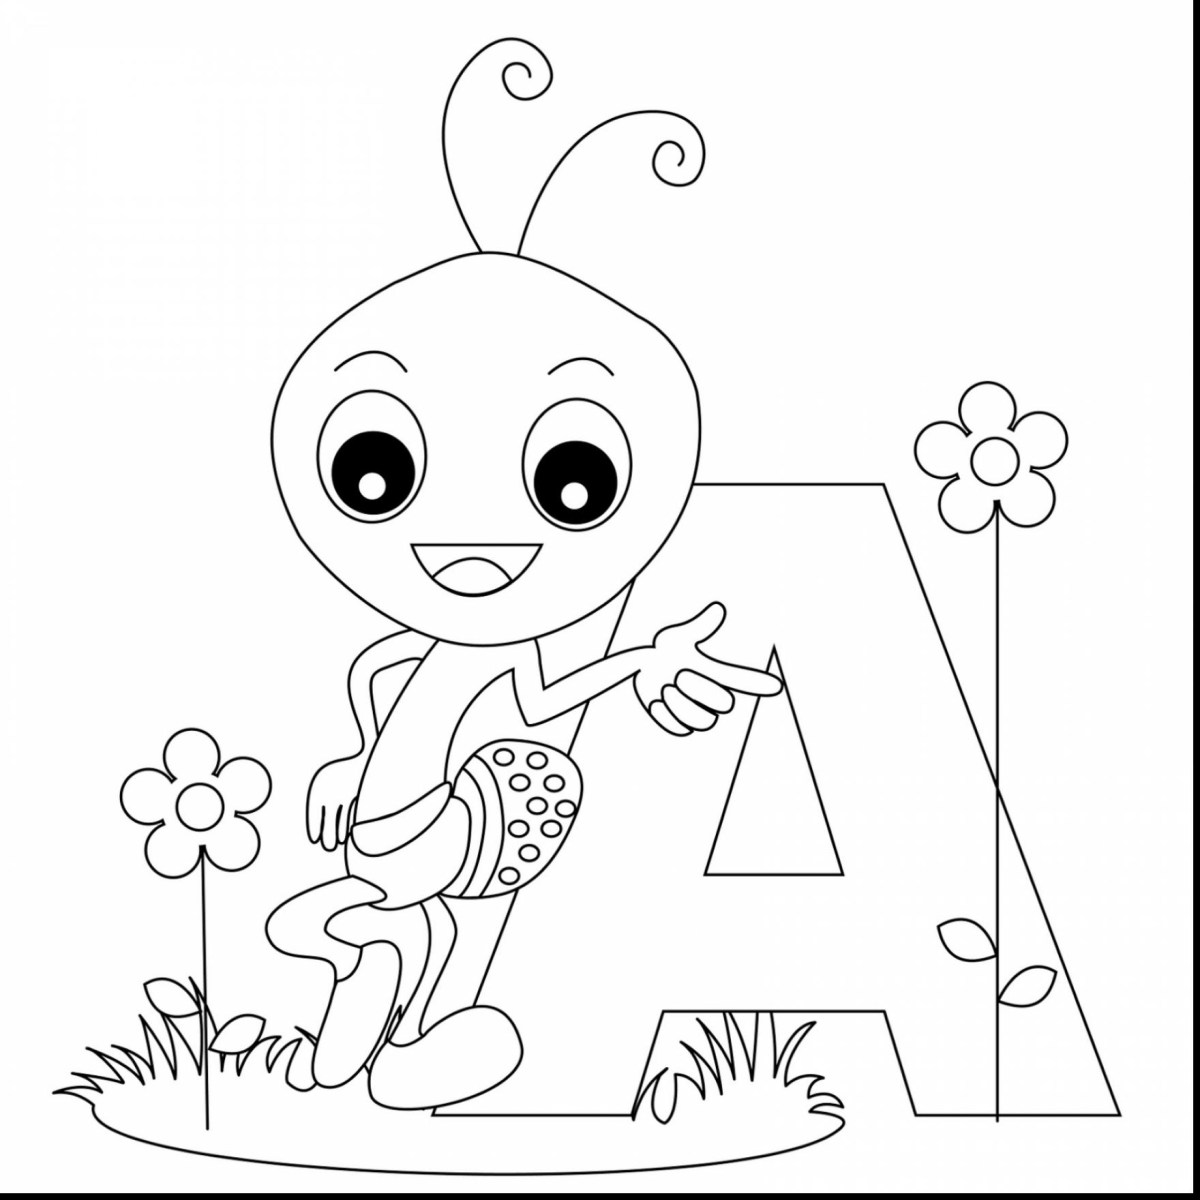 Dltk Coloring Pages Dtlk 26 Top Dltk Coloring Sheets 18 Best Free Coloring Pages Site